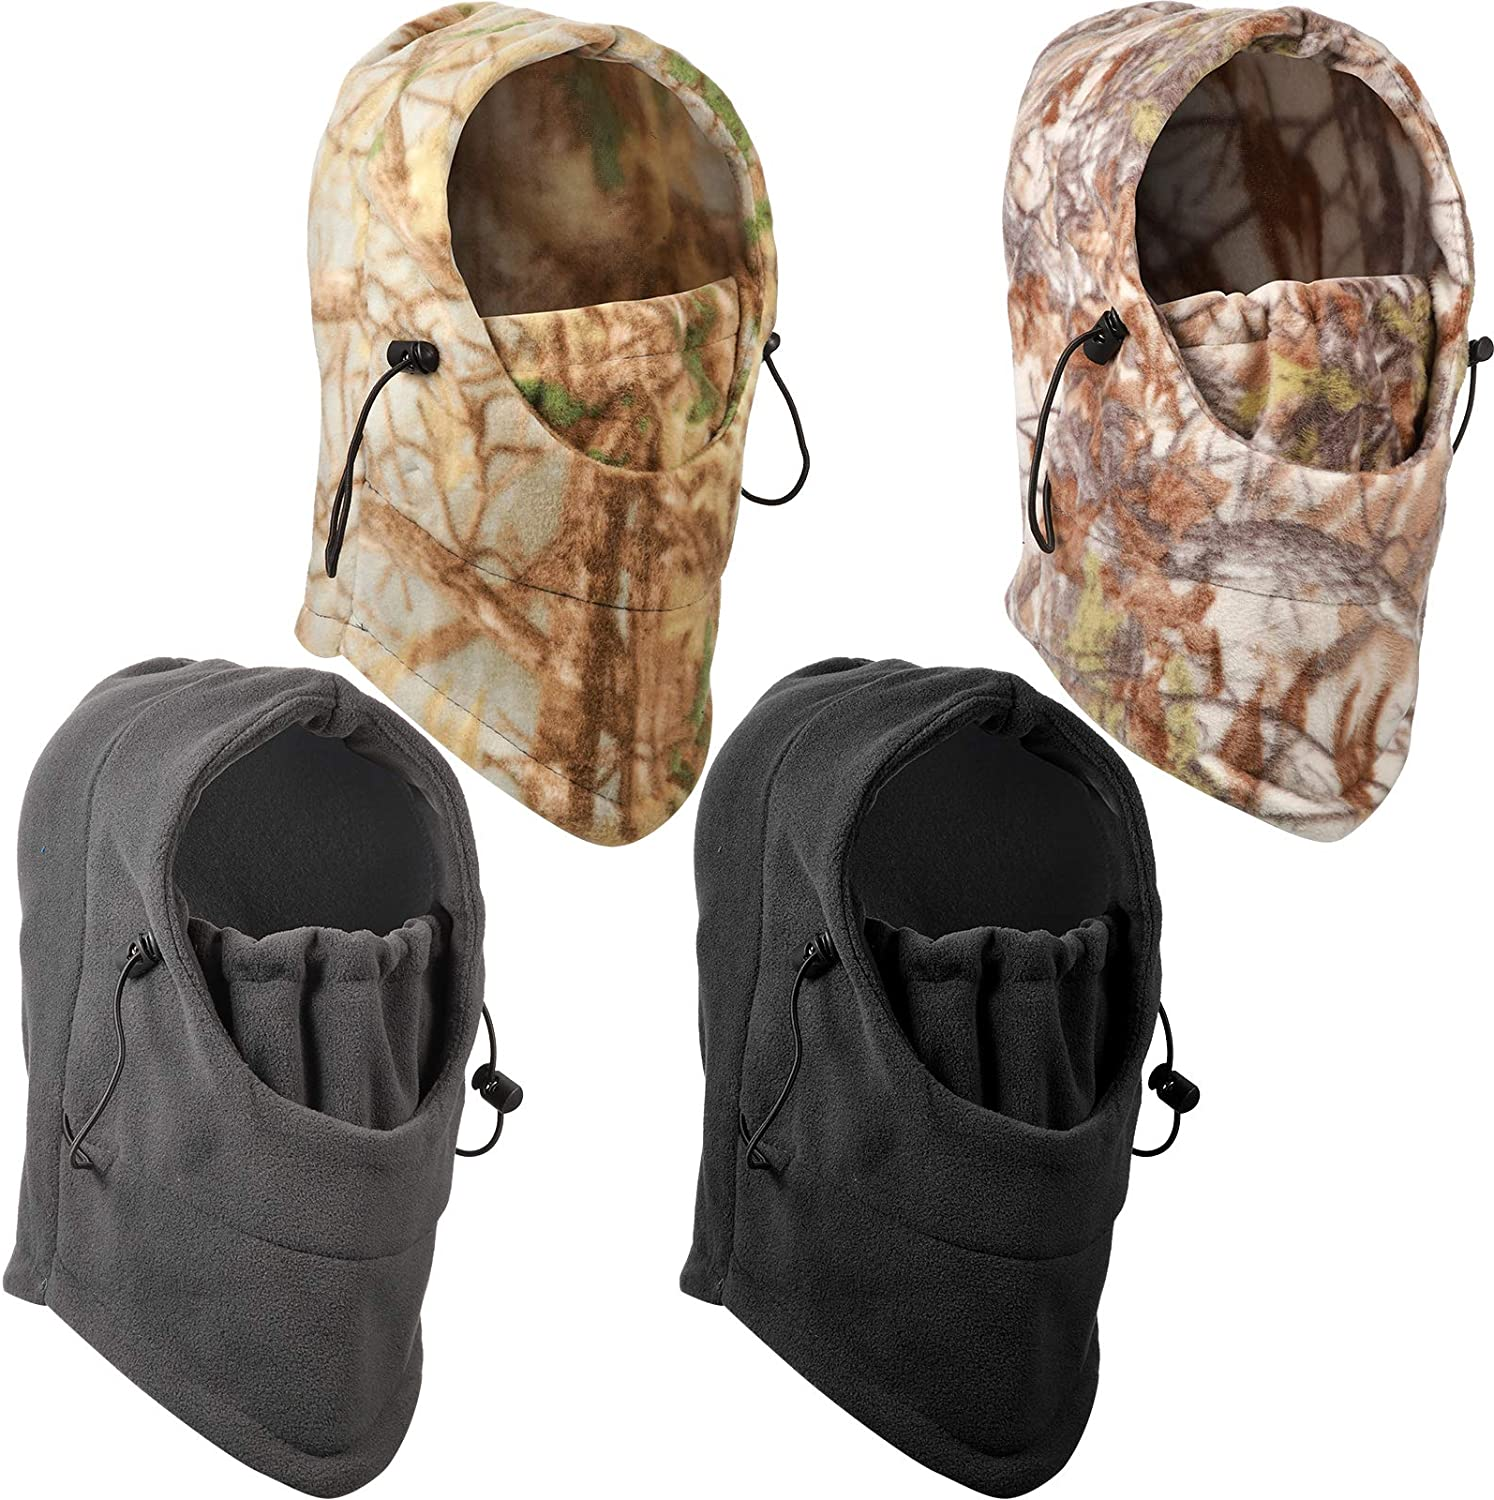 4 Sales results No. 1 Pieces Max 69% OFF Winter Balaclava Ski Face F Thermal Camouflage Covering